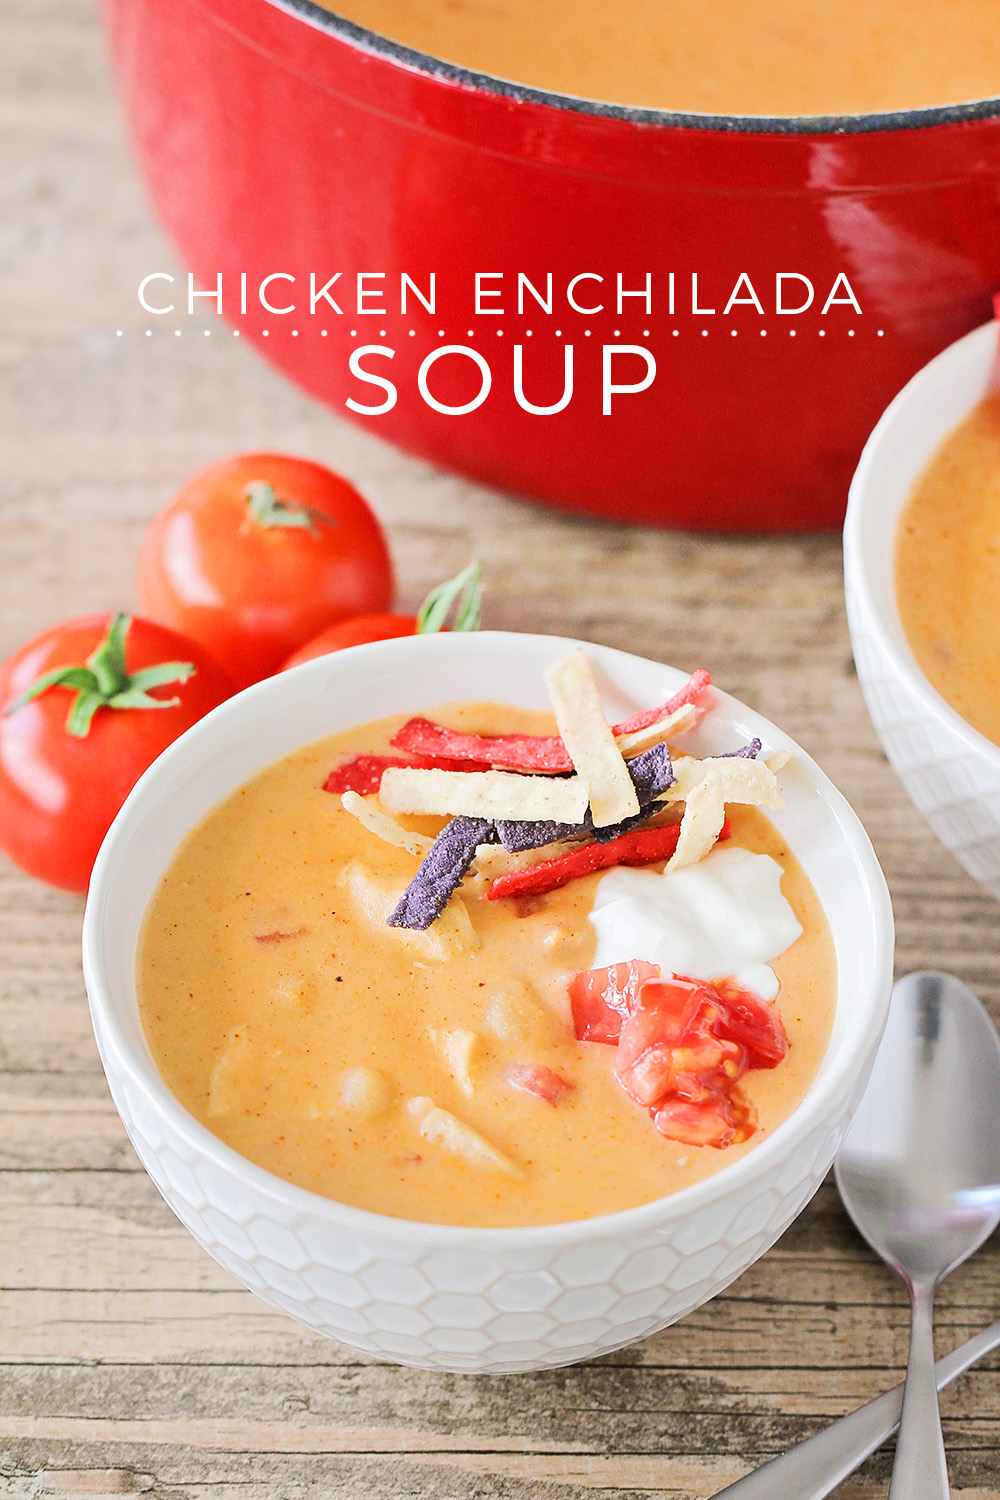 This savory and cheesy chicken enchilada soup is incredibly flavorful and easy to make too!